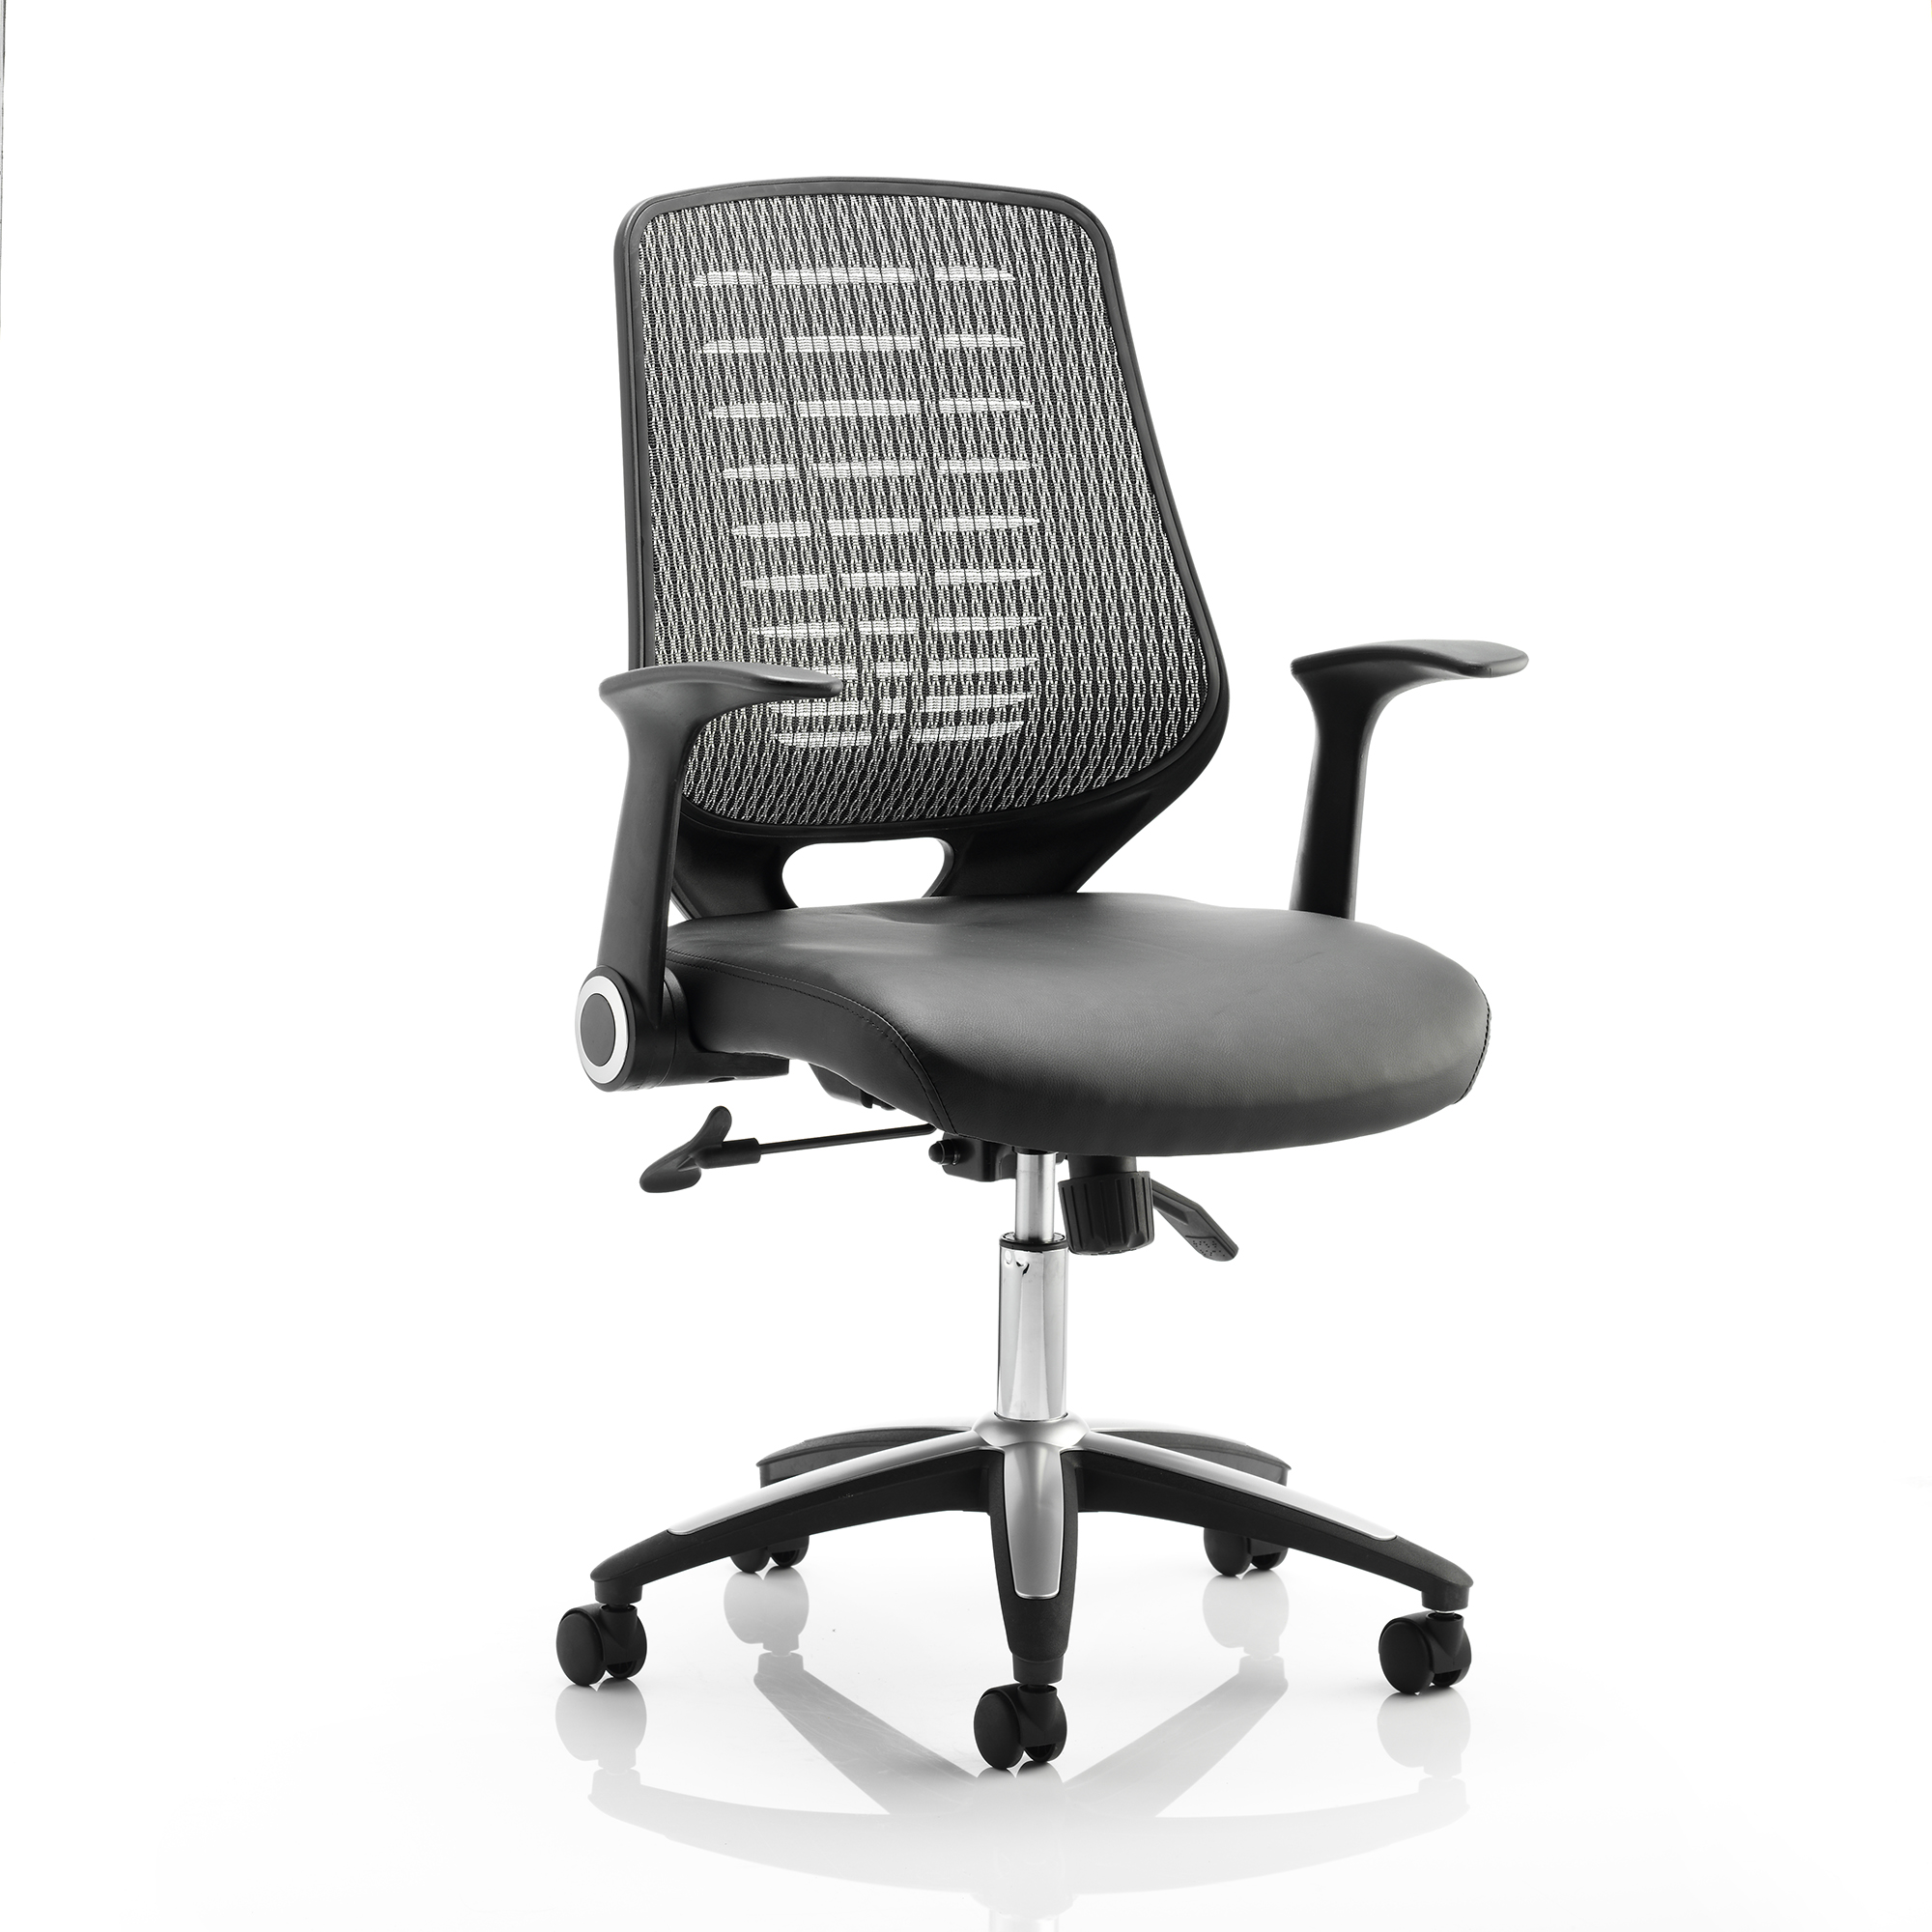 Guest seating Sonix Relay Task Operator Chair With Arms Leather Seat Back Silver Ref OP000118